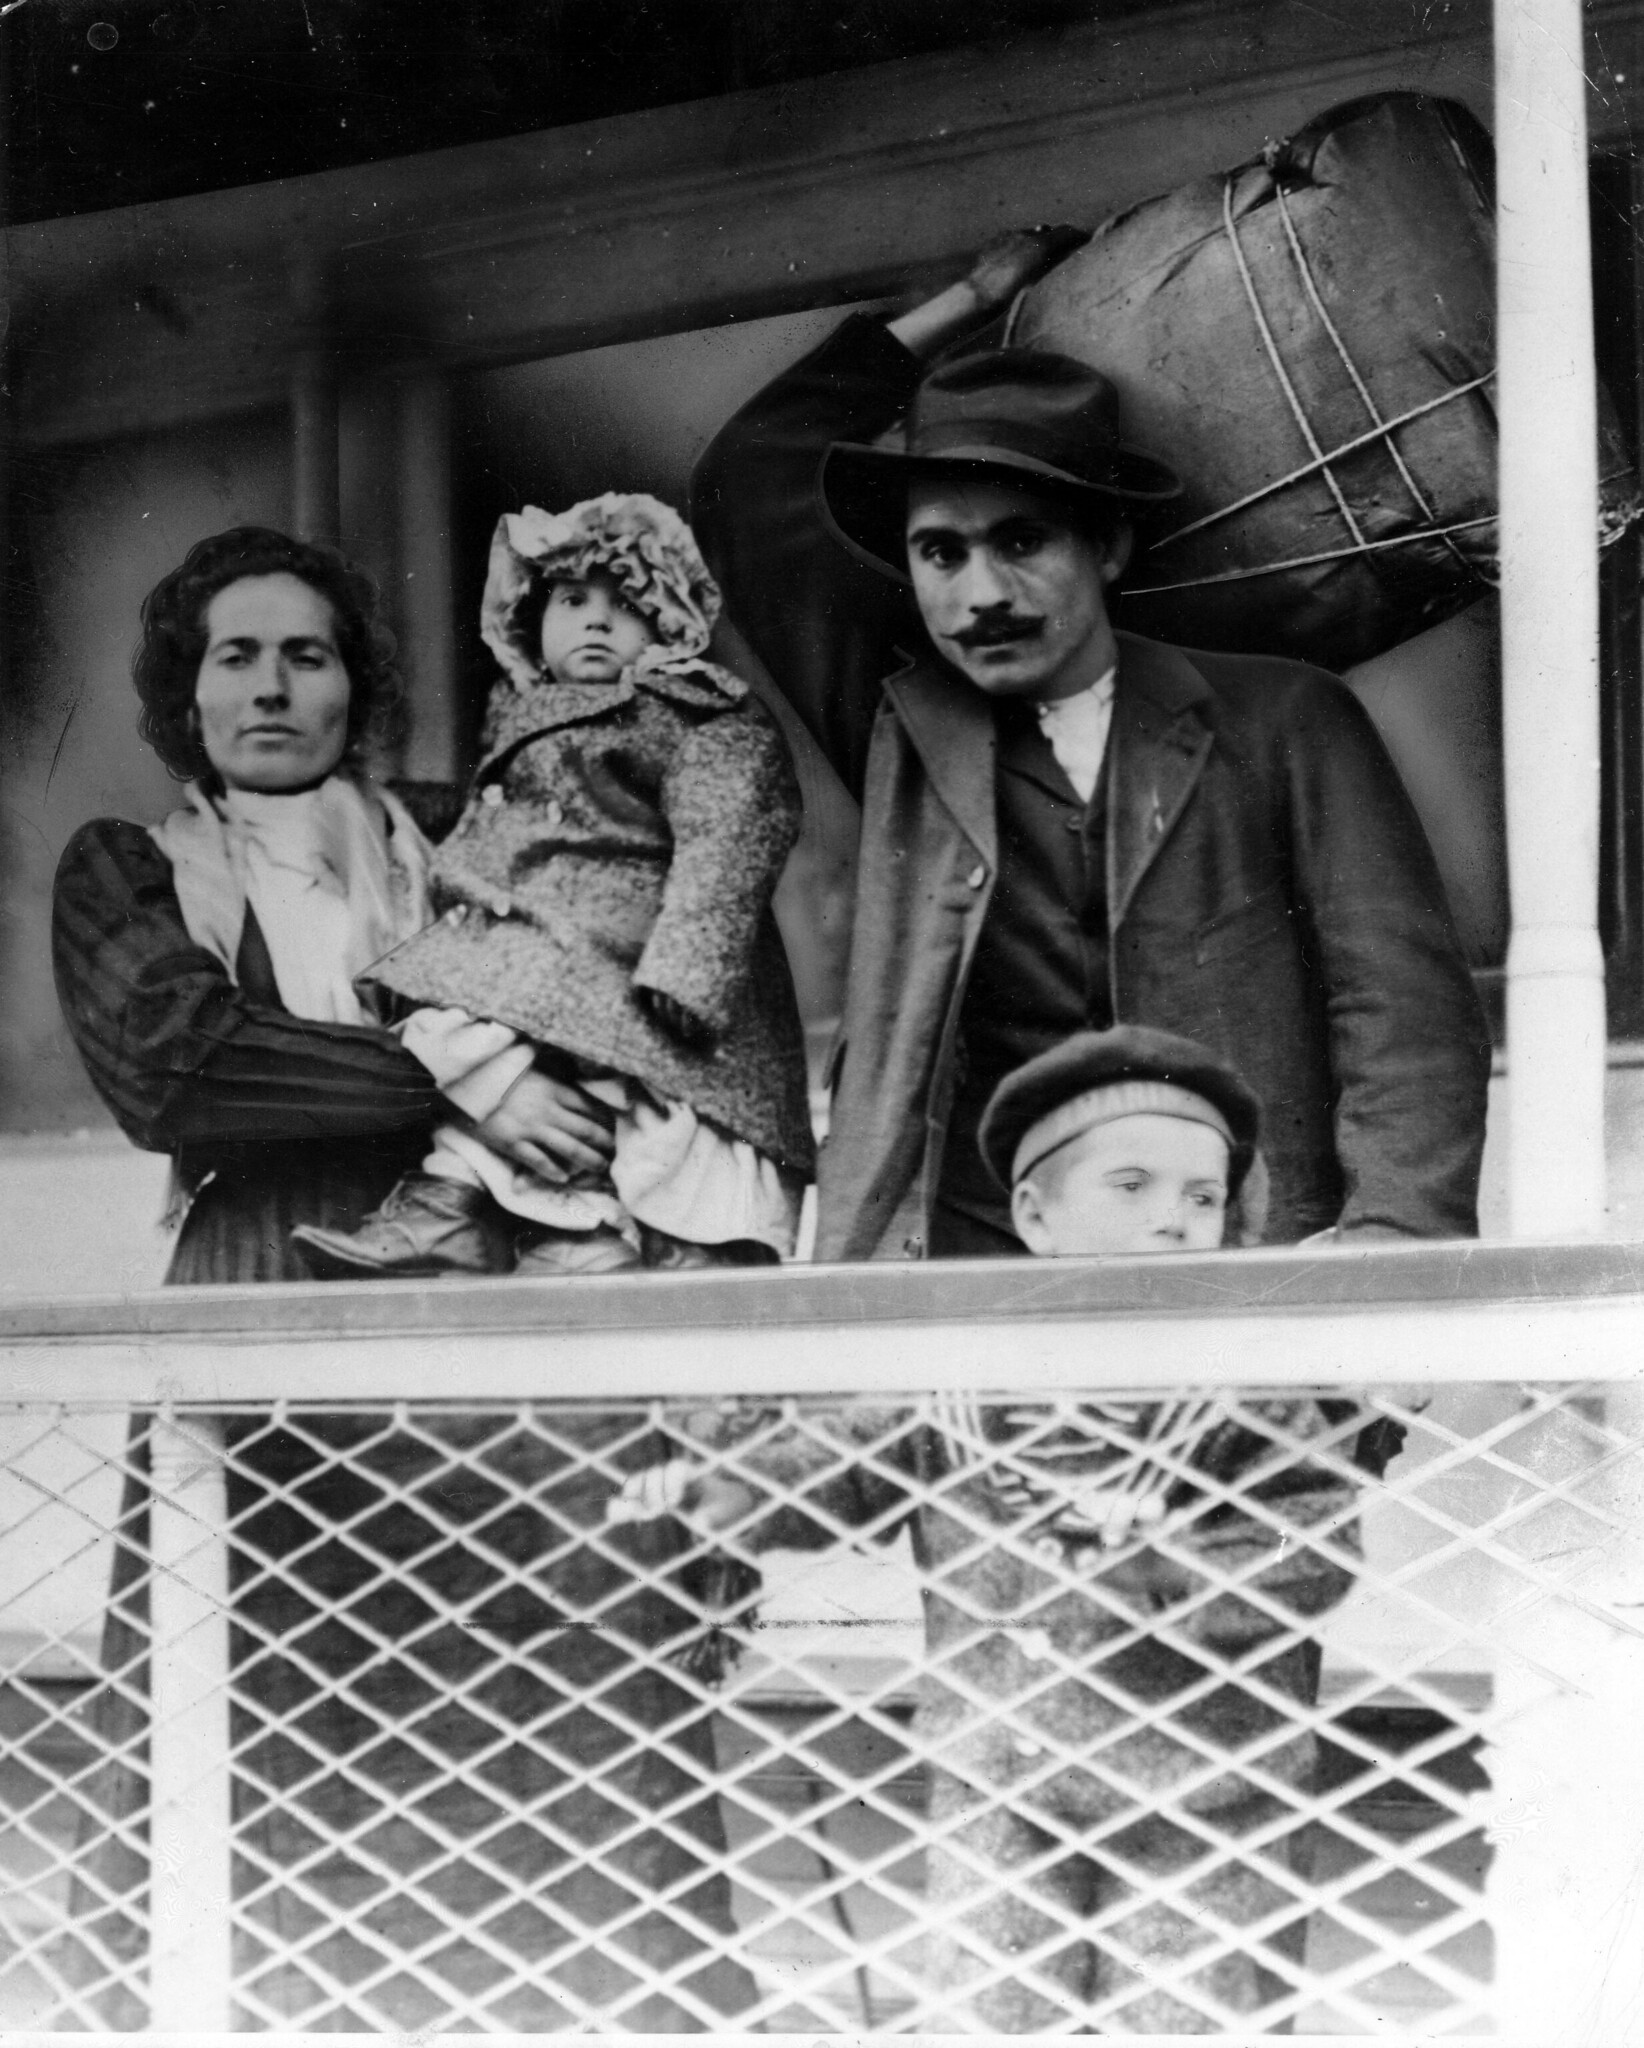 Immigrant family on a ship. Man holds their bundle